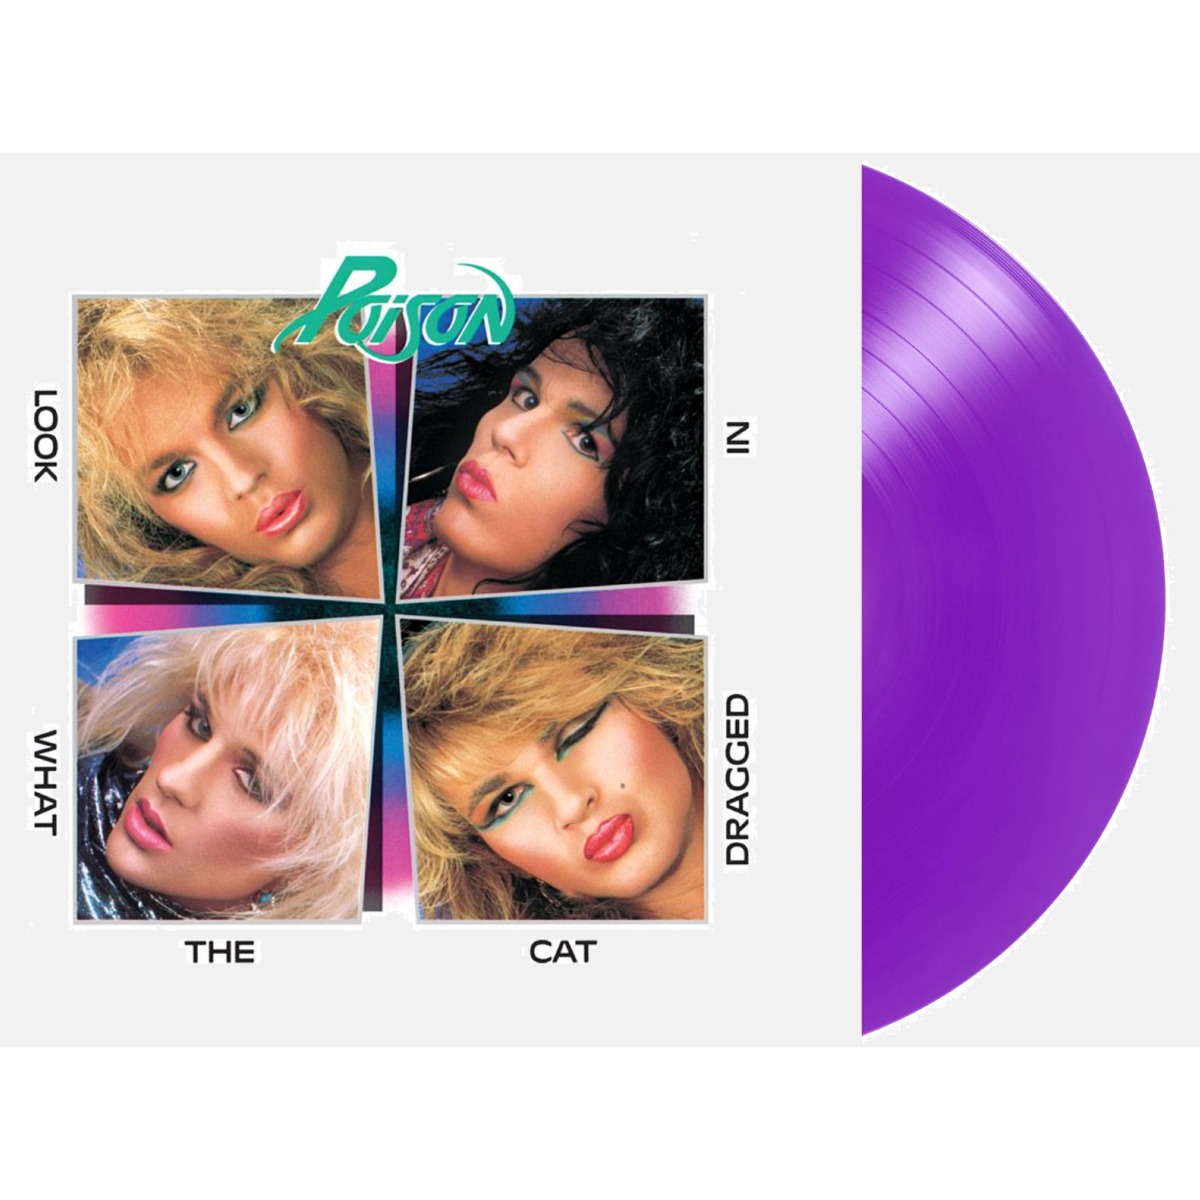 Poison - Look What The Cat Dragged In (180 Gram Audiophile Translucent Purple Vinyl/Limited Edition/Gatefold Cover)